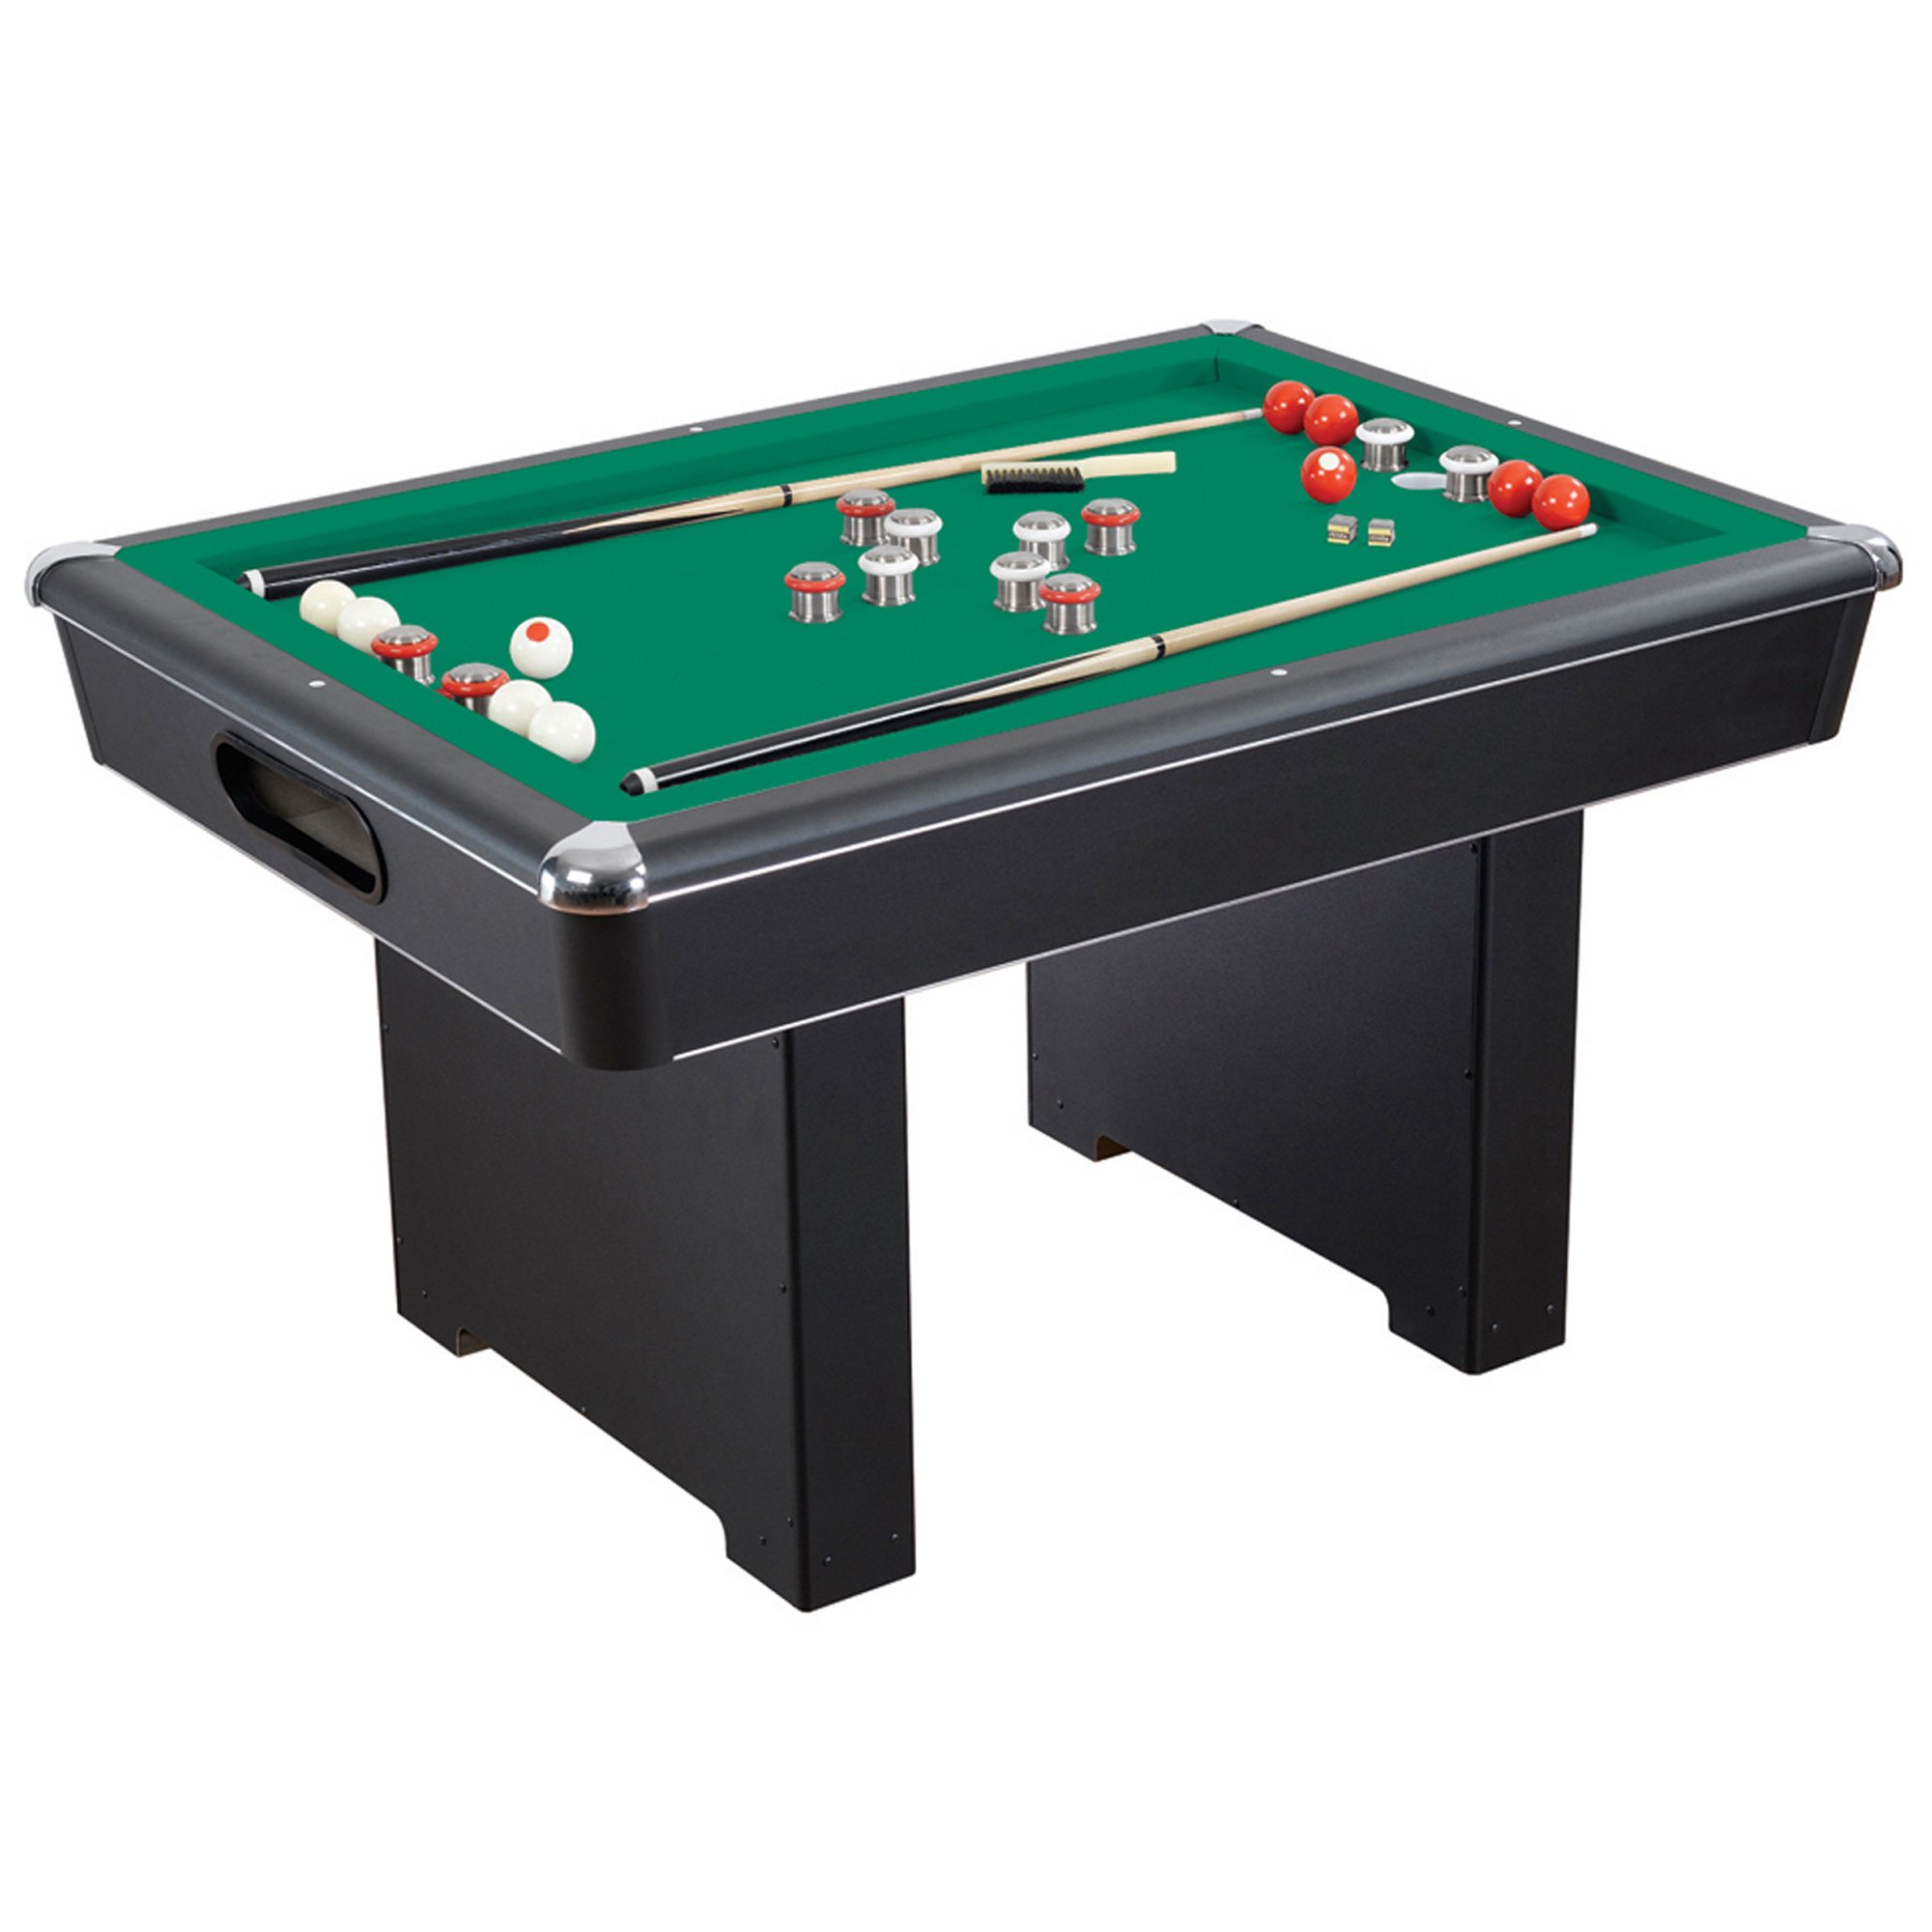 "Hathaway Renegade 54"" Slate Bumper Pool Table for Family Game Rooms with Green Felt, 48"" Cues, Balls, Brush and Chalk by Hathaway"